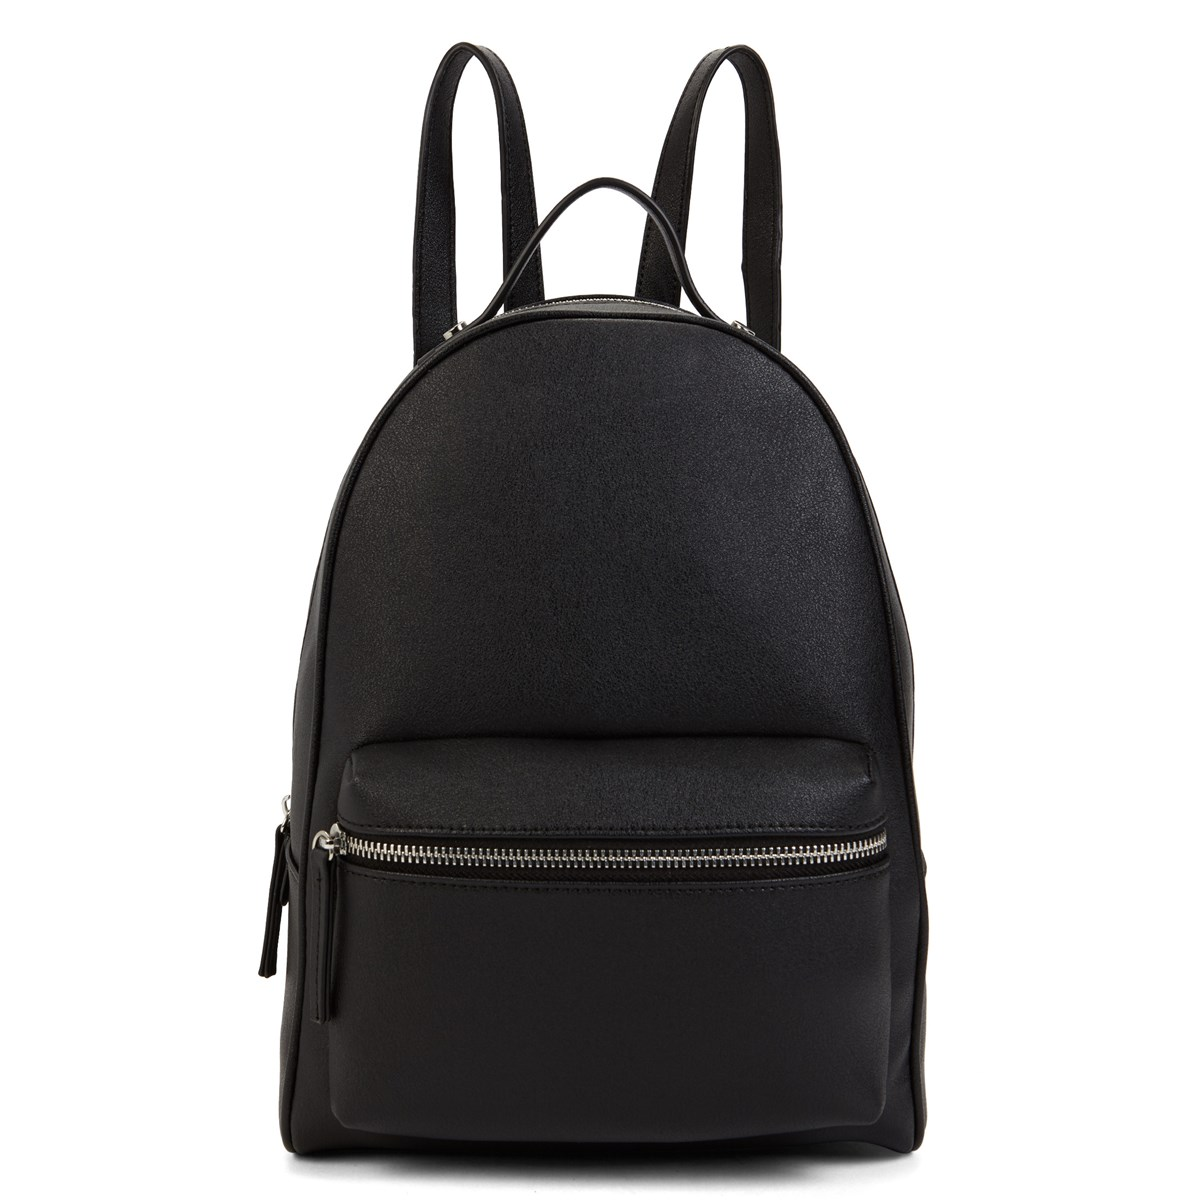 Backpack Black Women 39s Talia Backpack In Black Little Burgundy